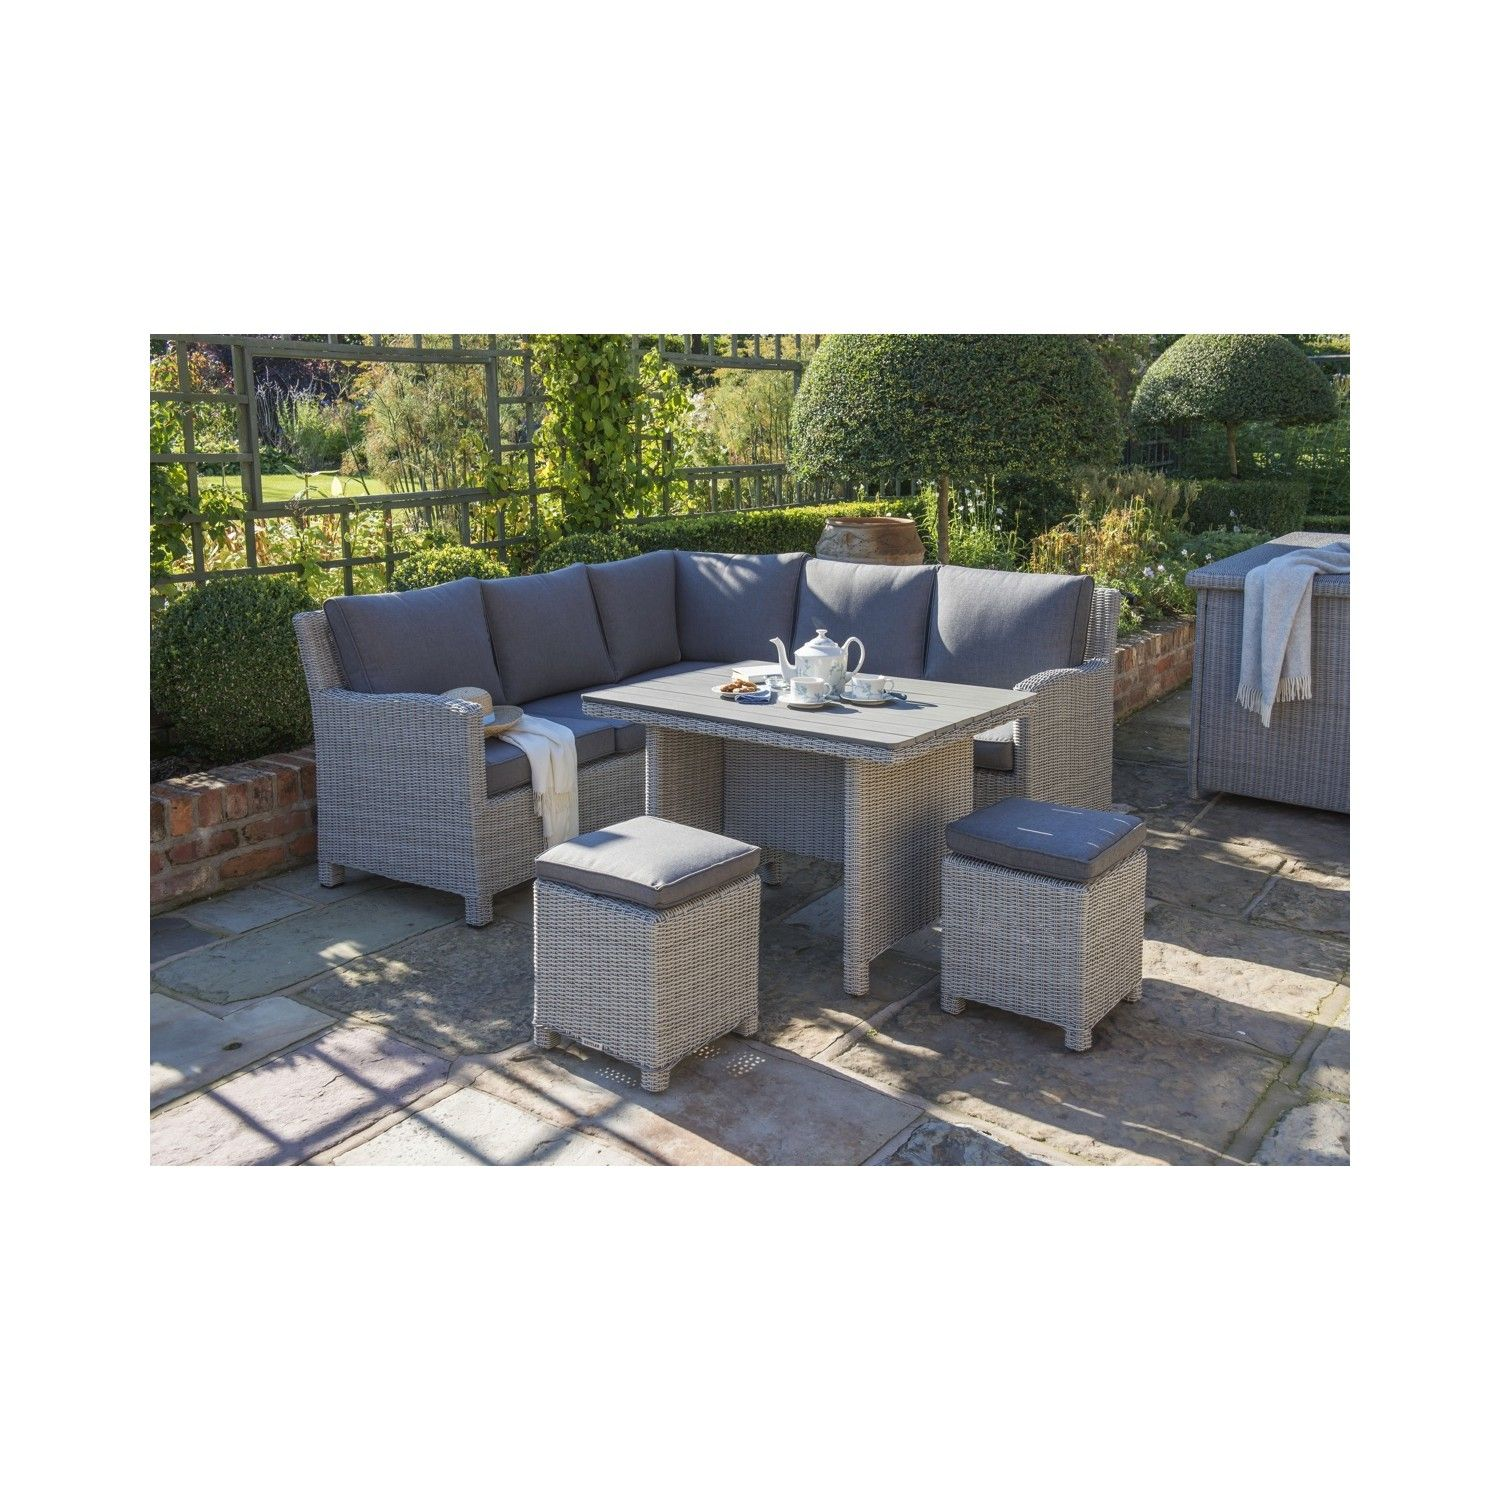 Garden Furniture Kettler kettler palma mini corner set whitewash | garden furniture